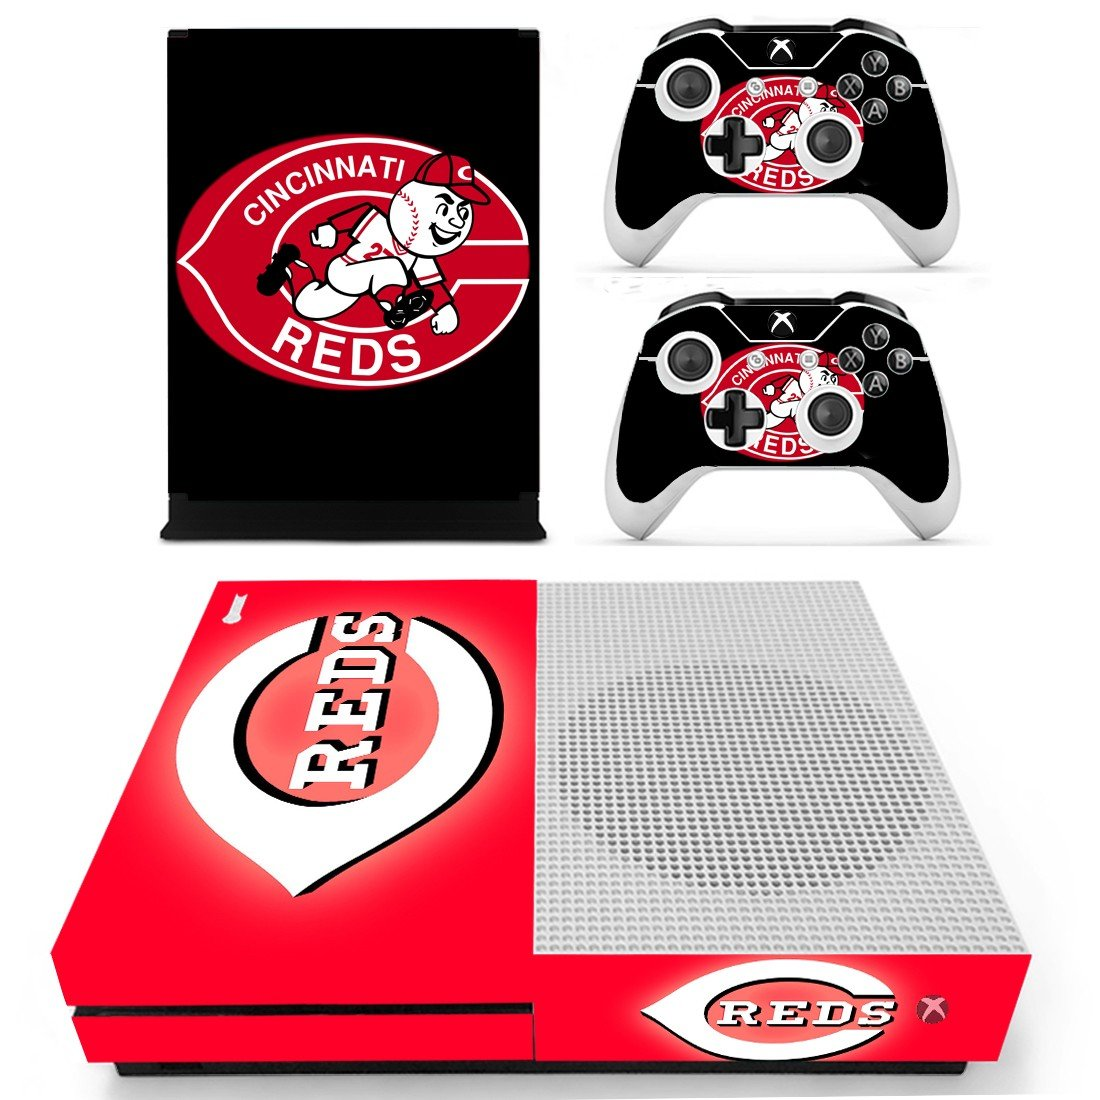 Cincinnati Reds skin decal for Xbox one S console and controllers